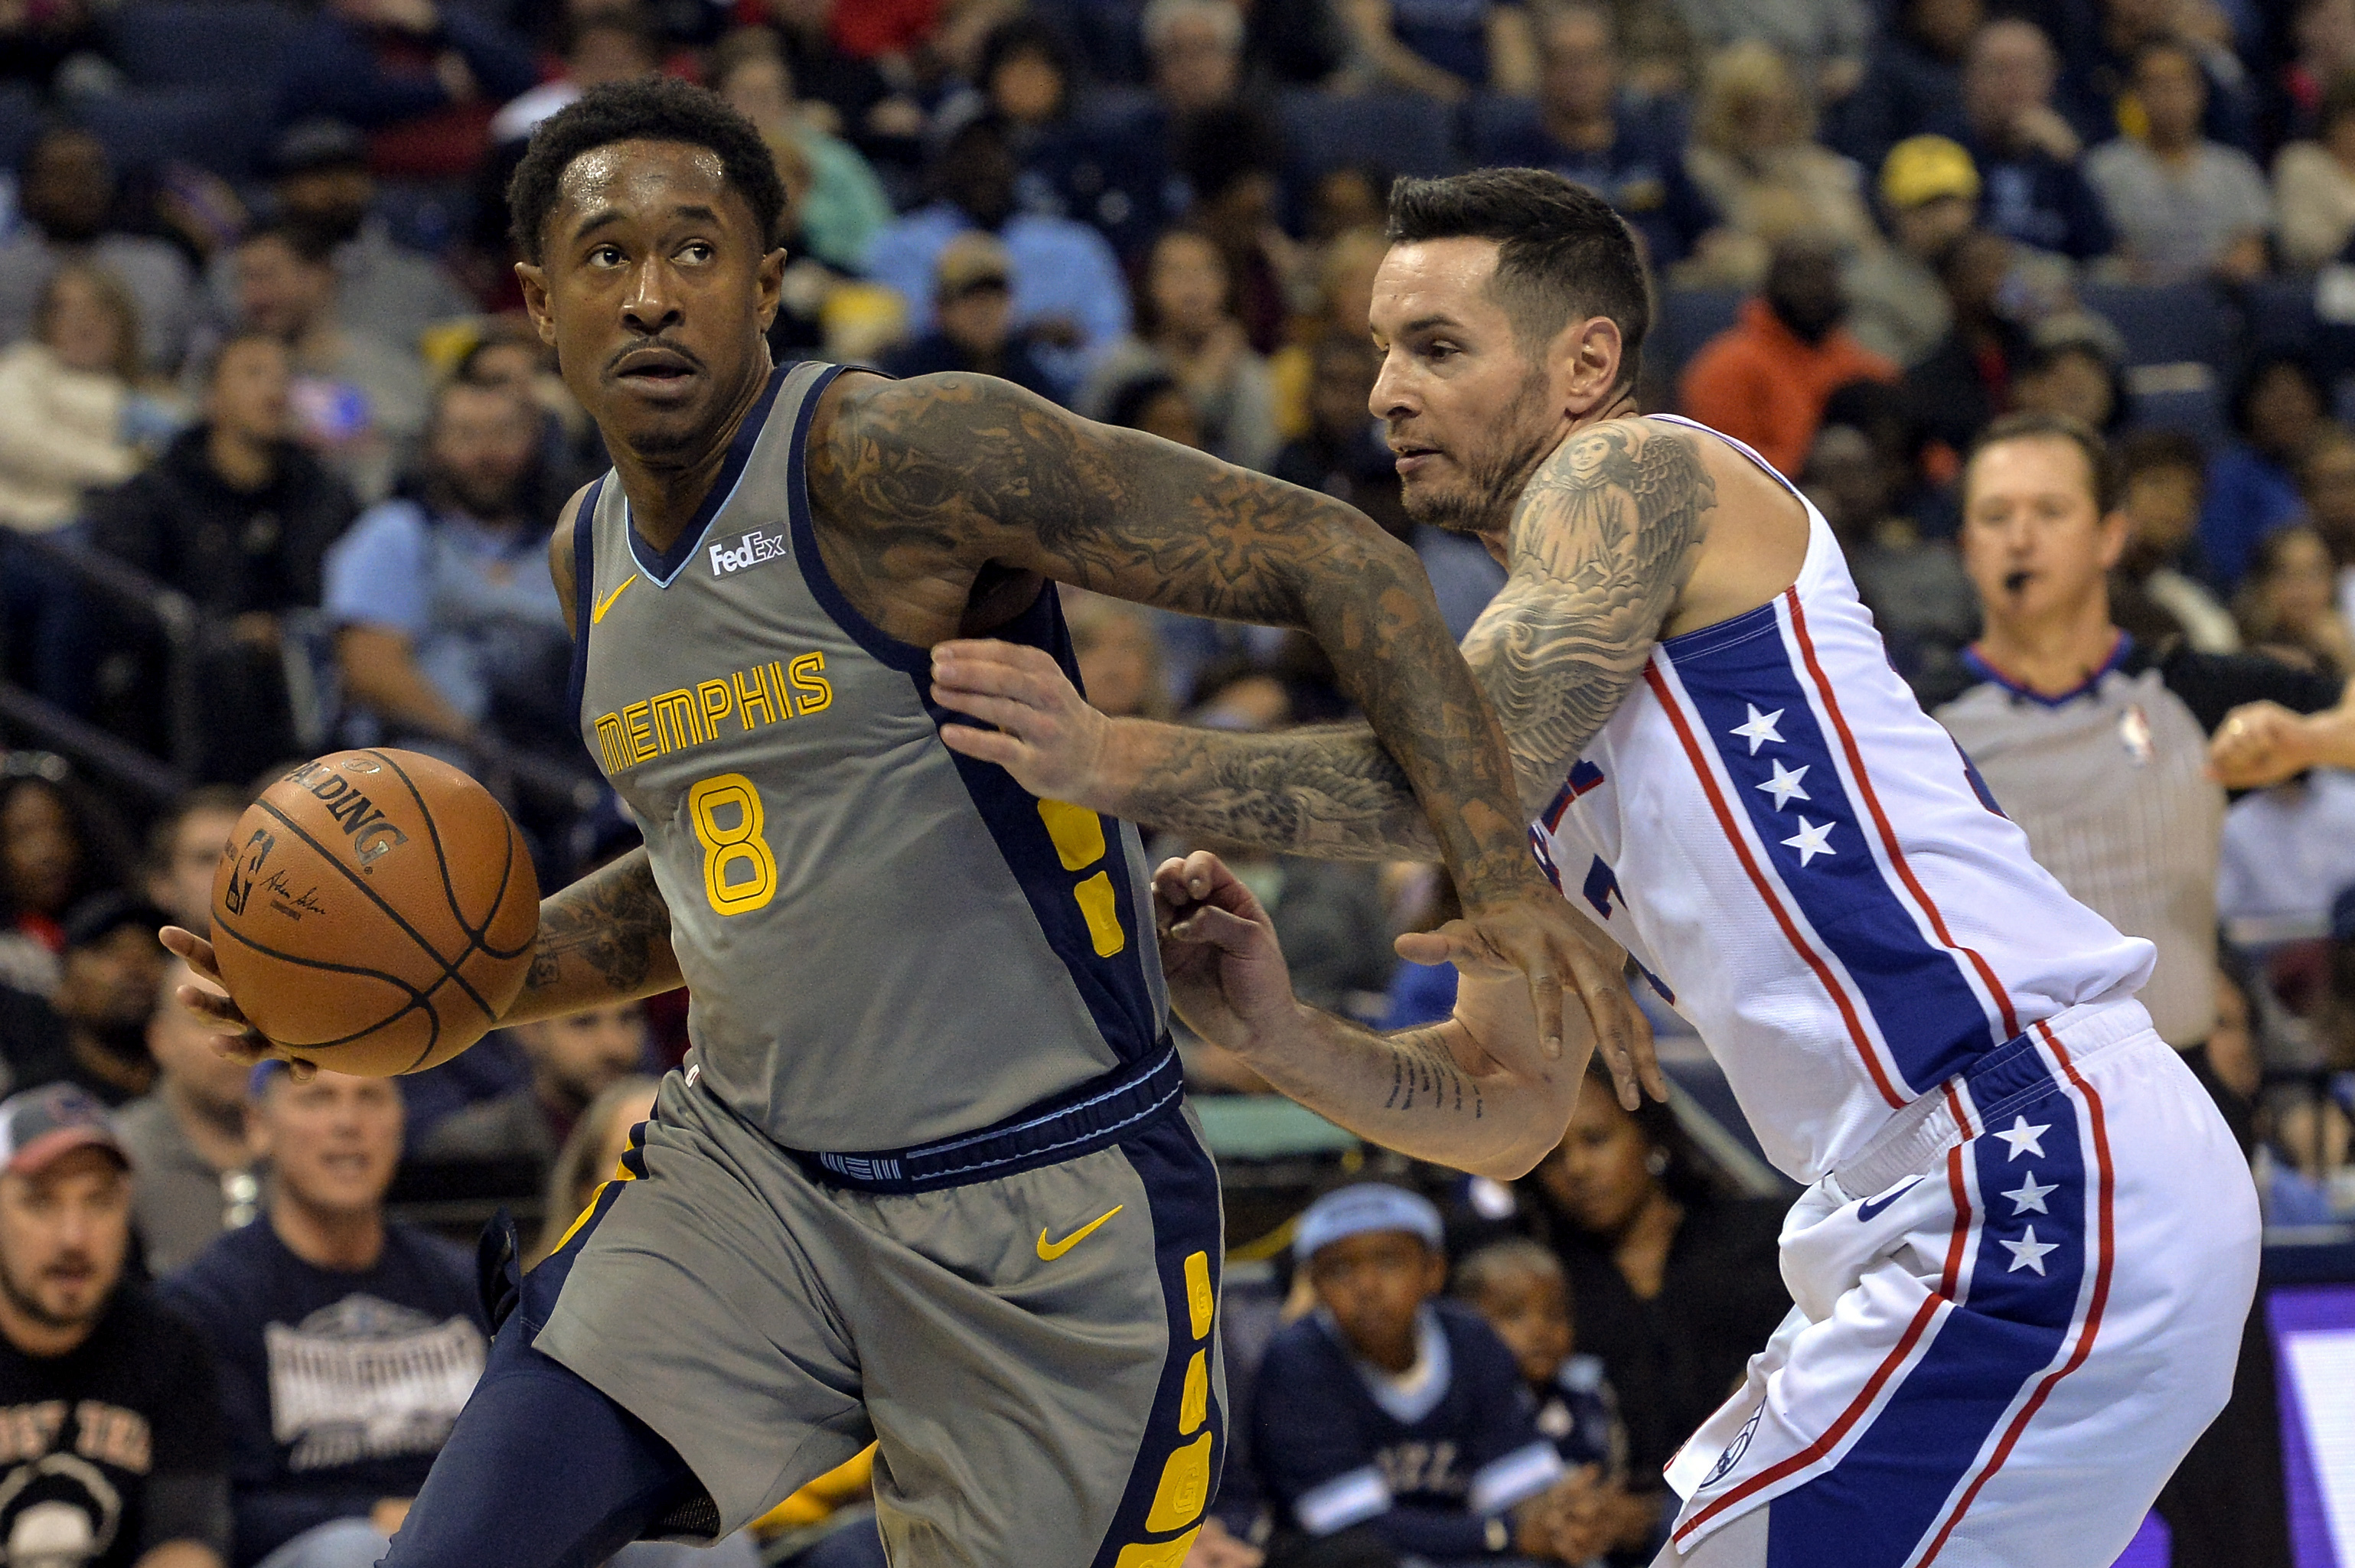 Conley scored 32 points sending Grizzles past 76ers in OT